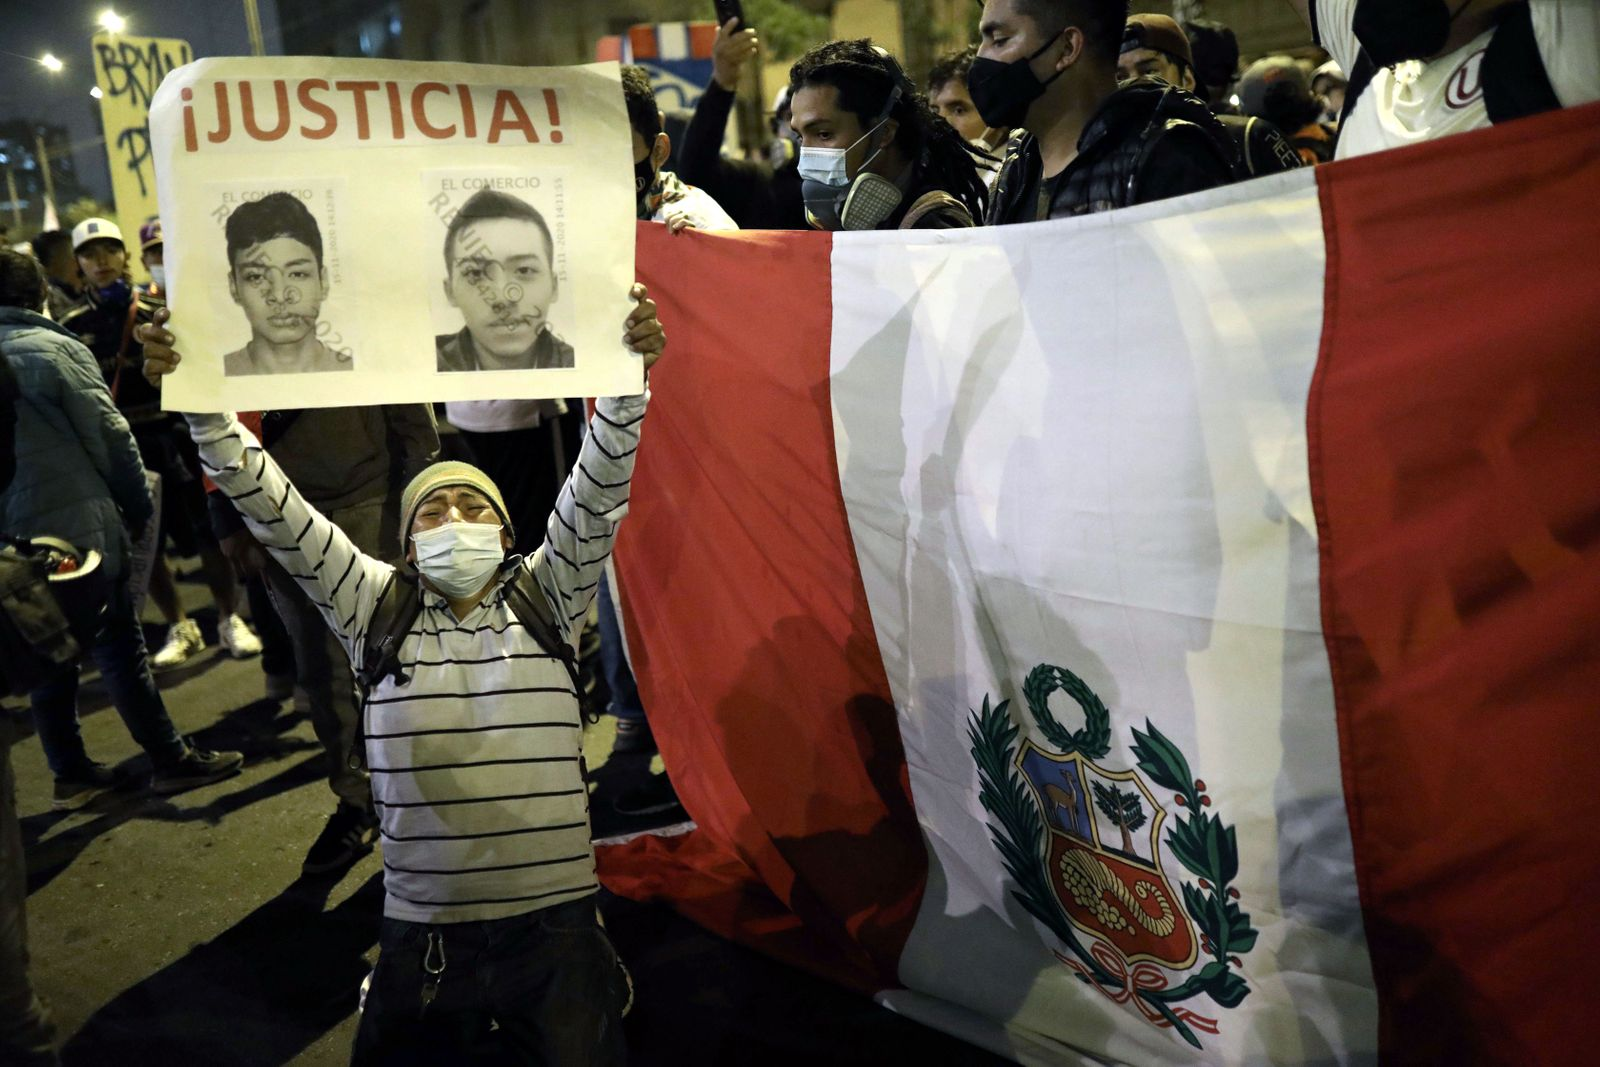 People protest for new constitution in Peru, Lima - 18 Nov 2020